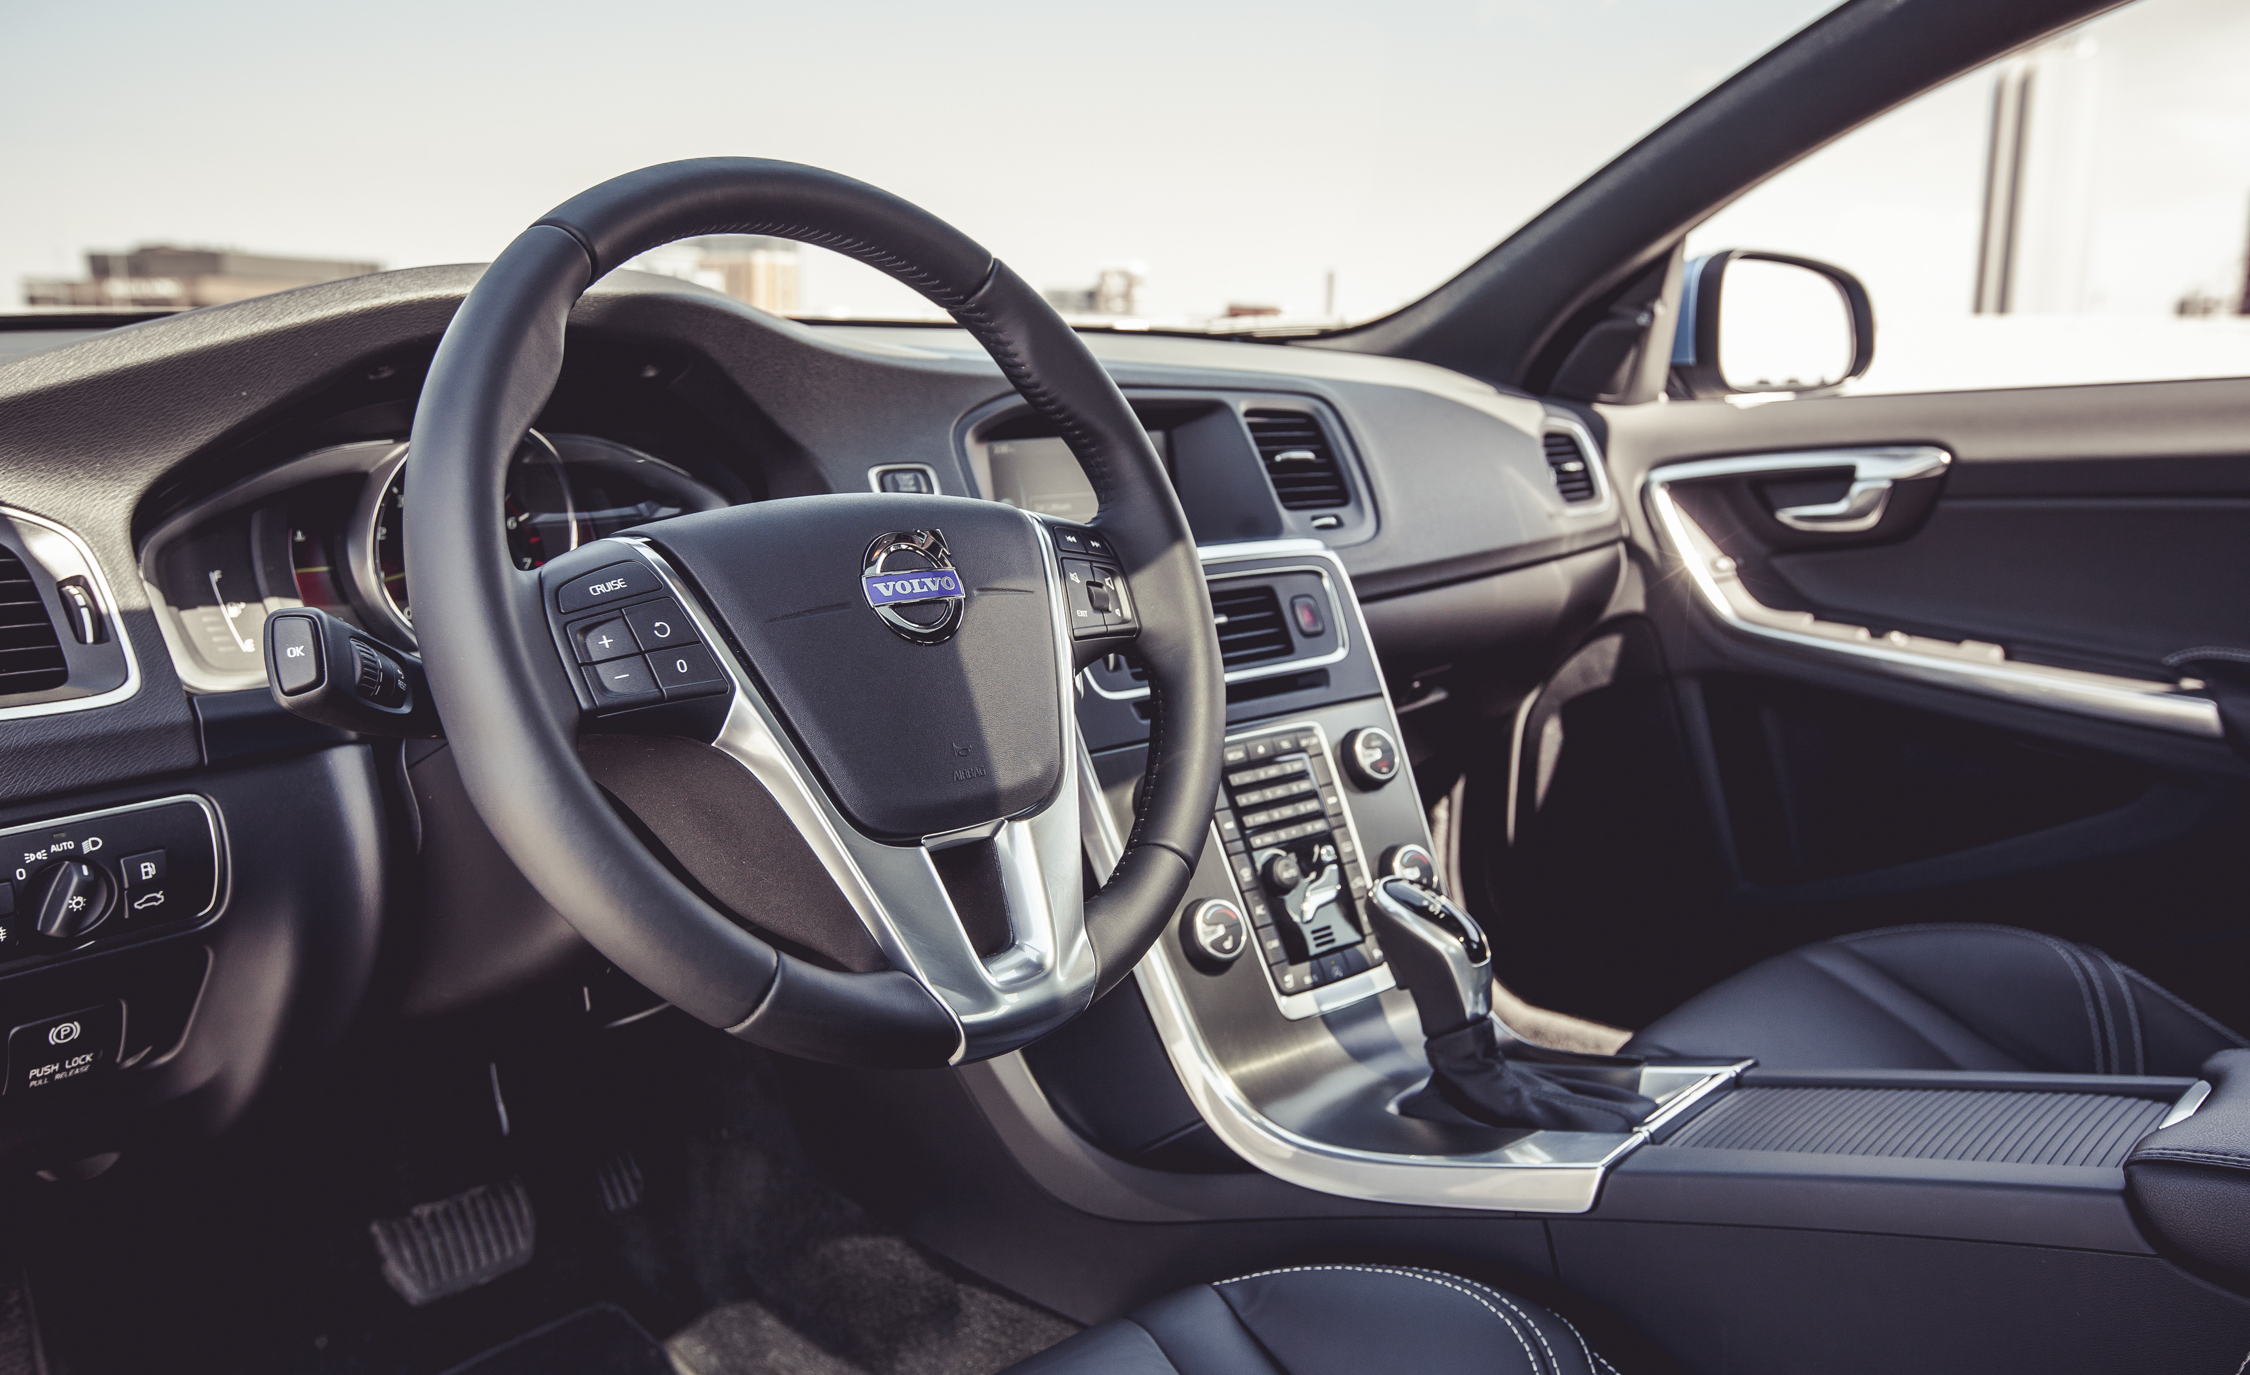 2015 Volvo V60 Interior Steering